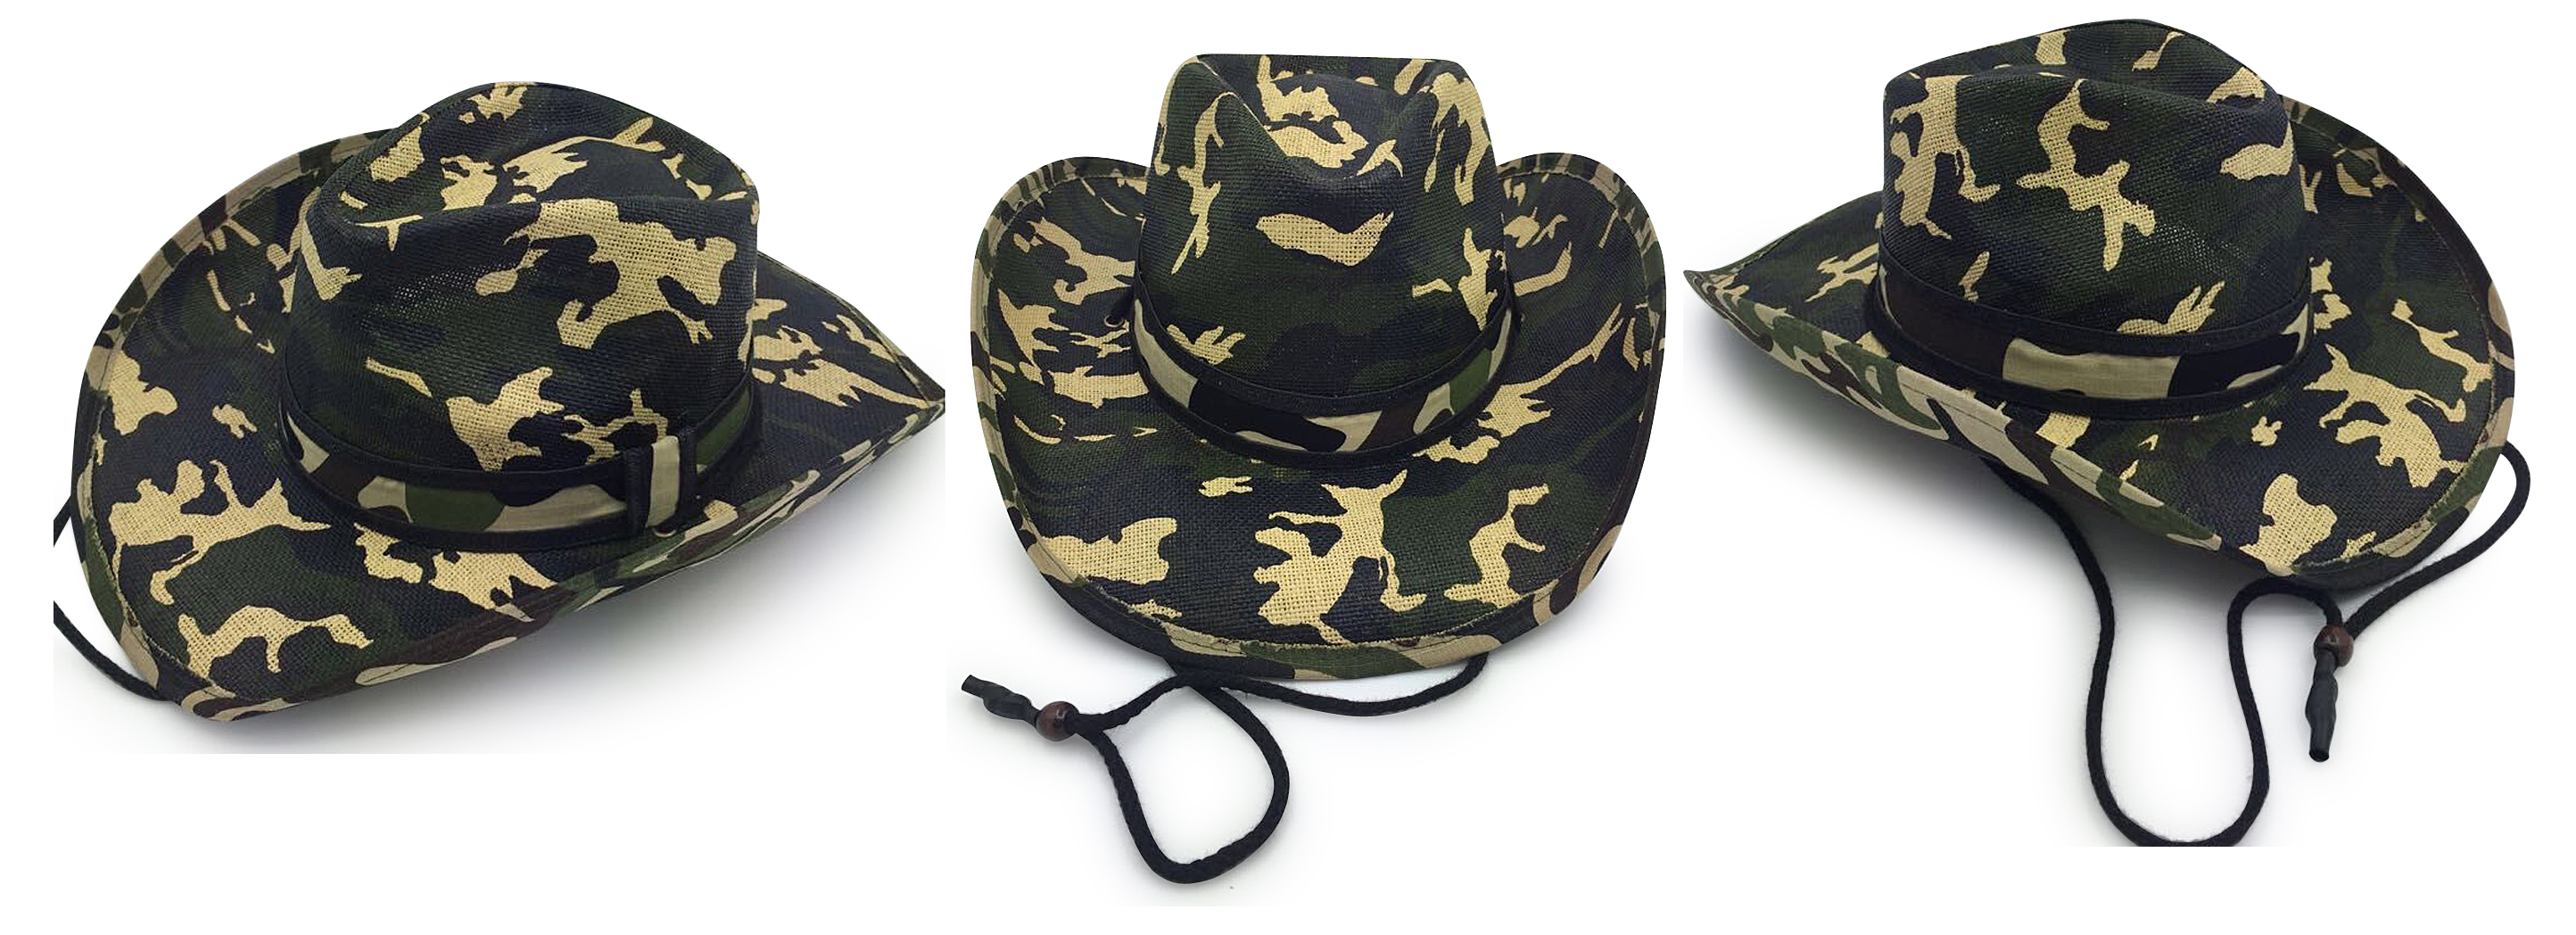 b35911969 Wholesale Cowboy Hat now available at Wholesale Central - Items 1 - 40